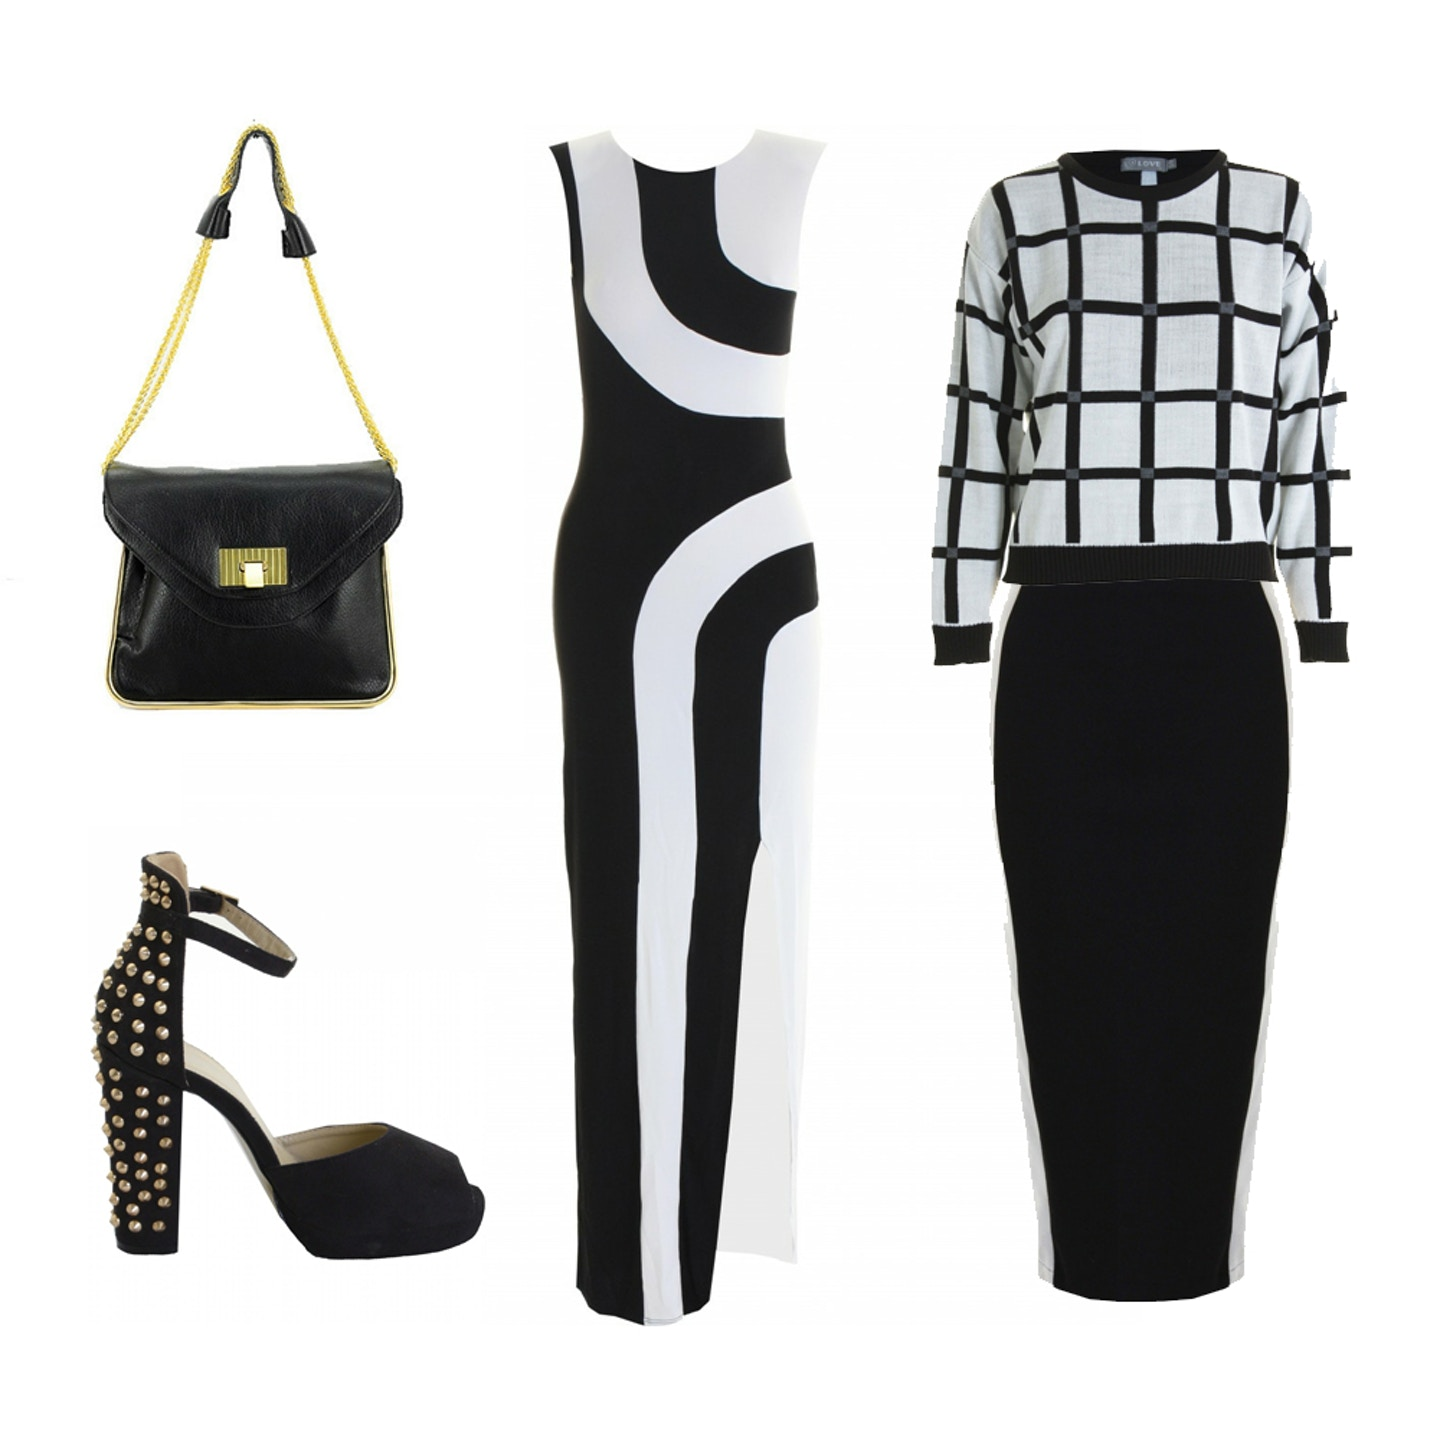 In Love with Fashion Spring Wishlist